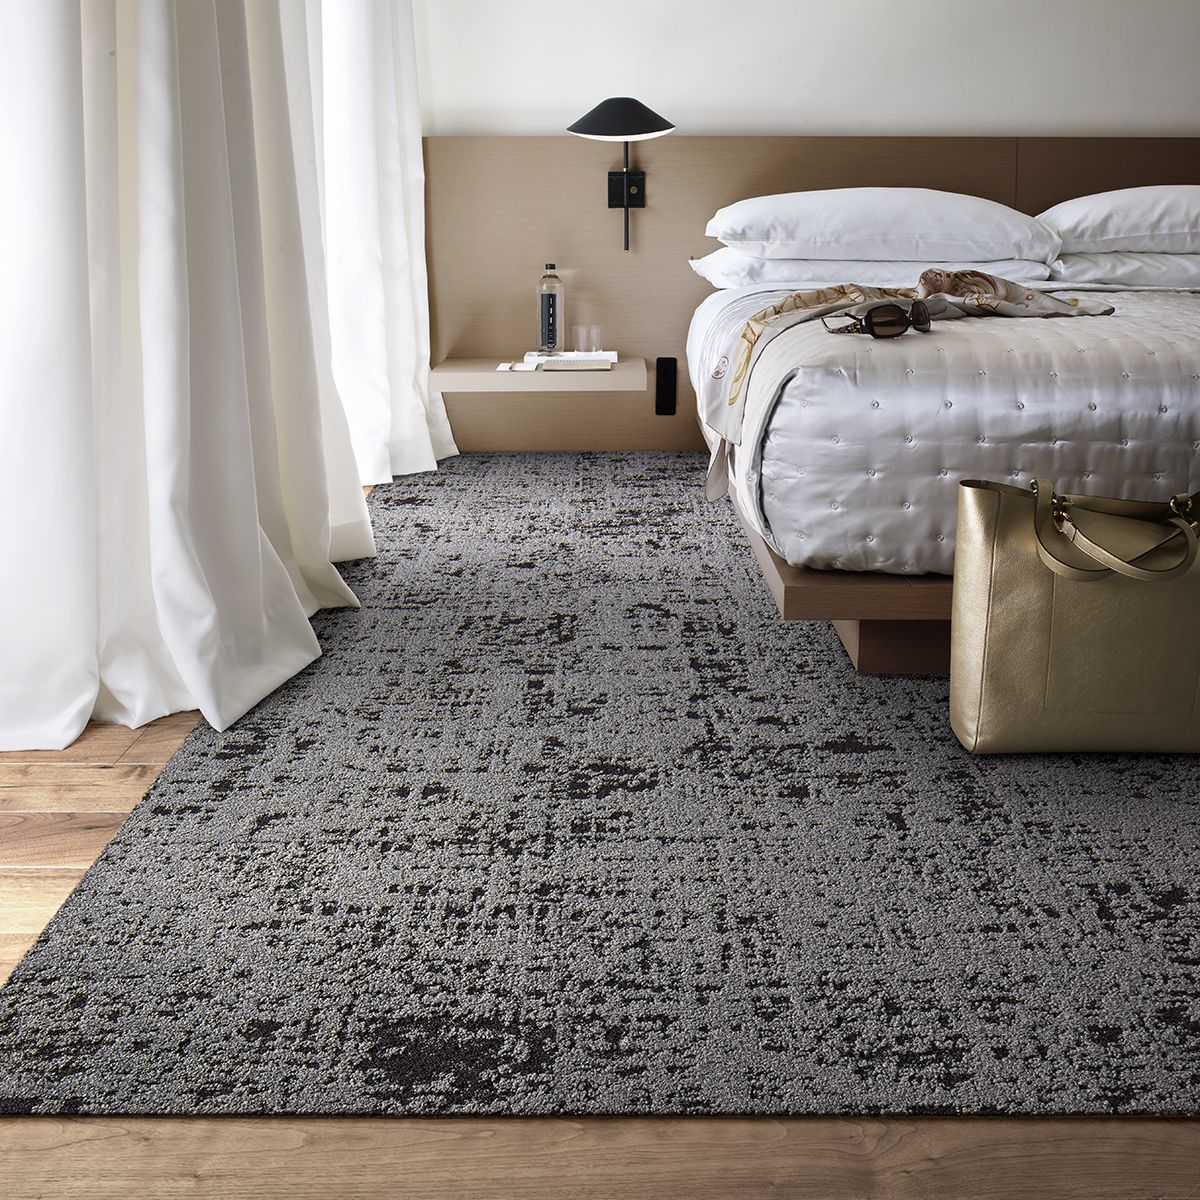 The Rug Collection By Interface Hospitality (Product Shown